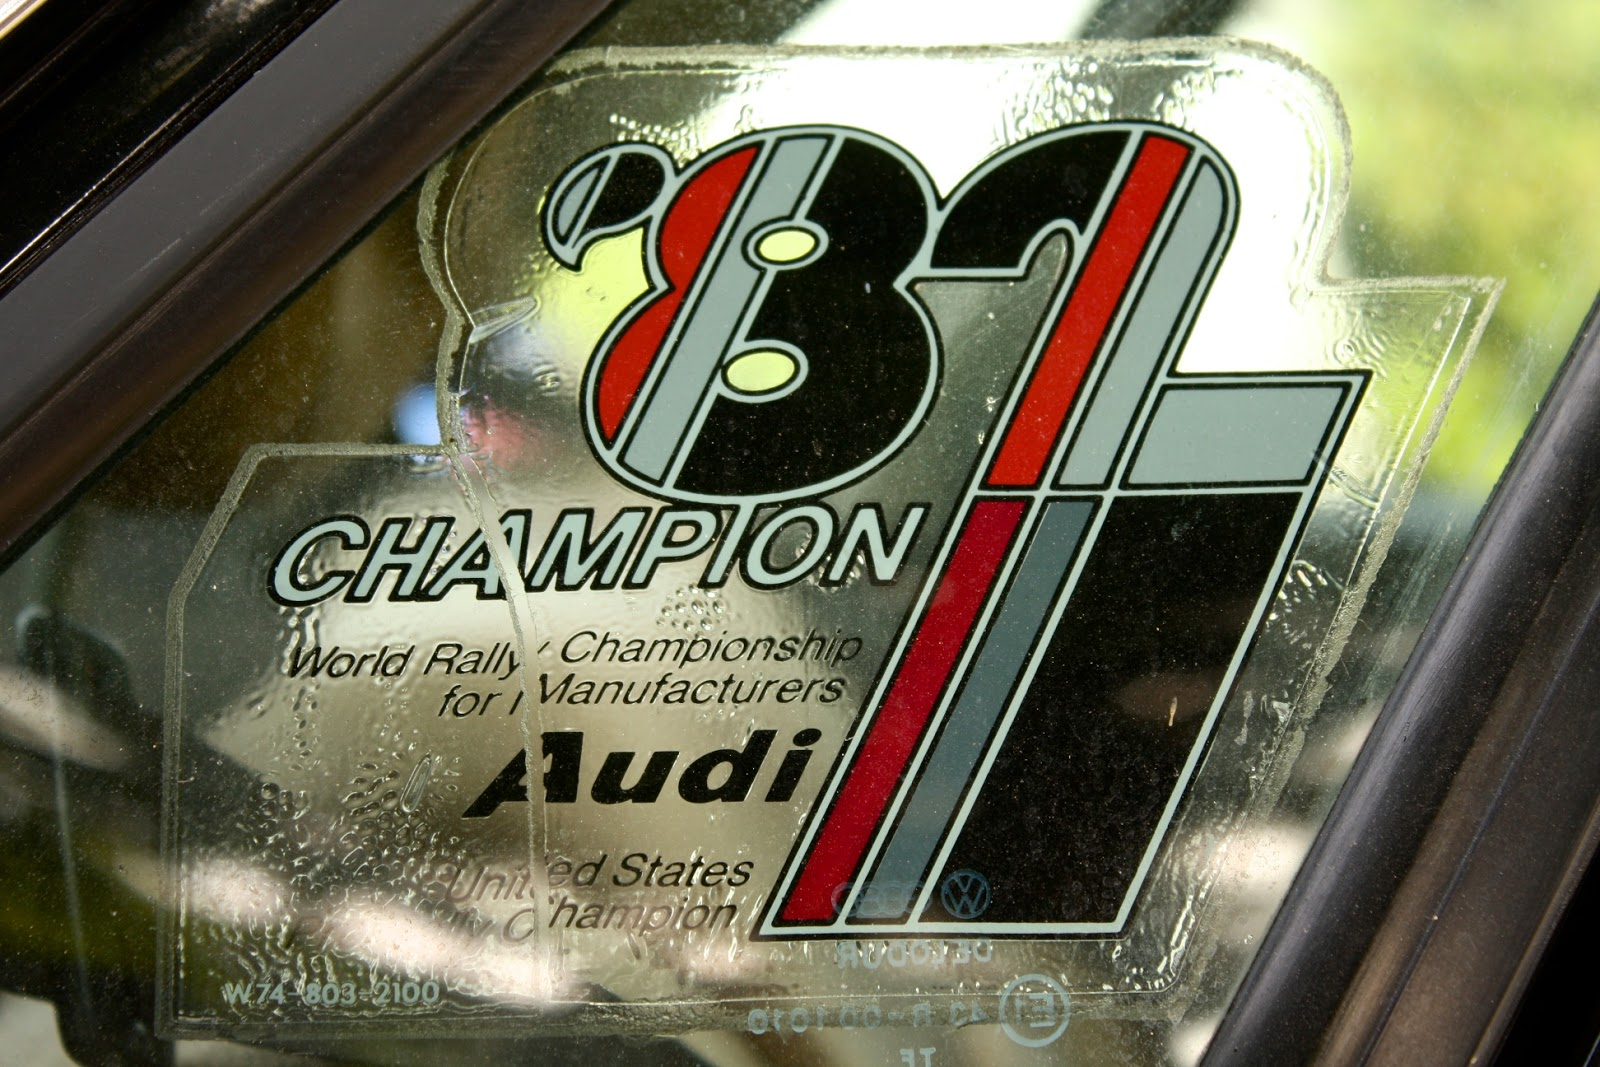 Audi 1982 World Rally Champion sticker